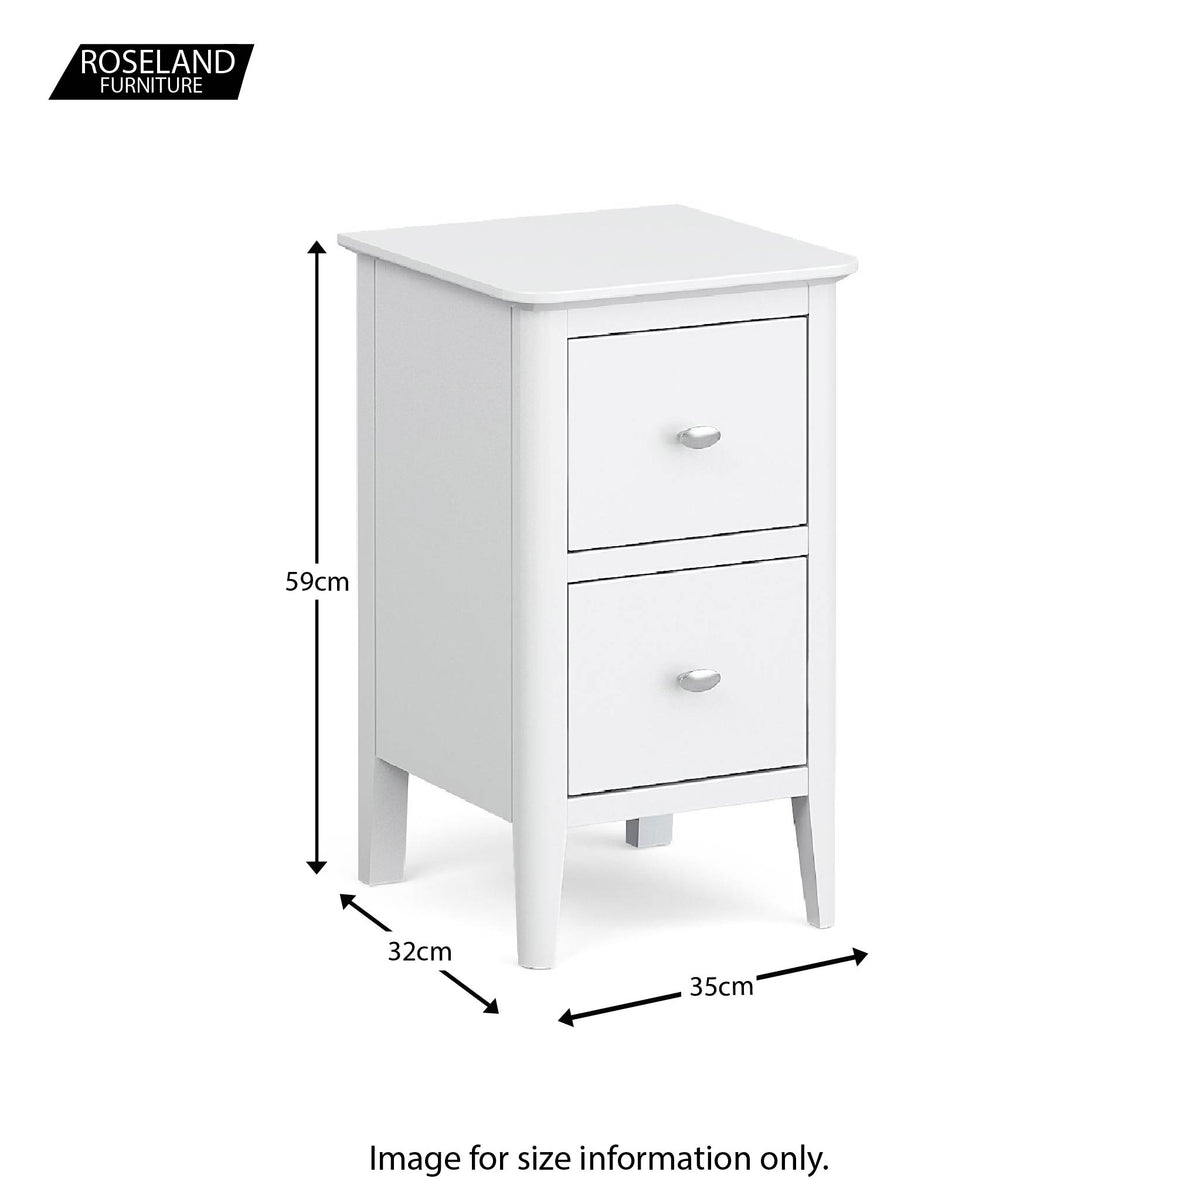 Chester White Narrow Bedside Drawers Table - Size guide